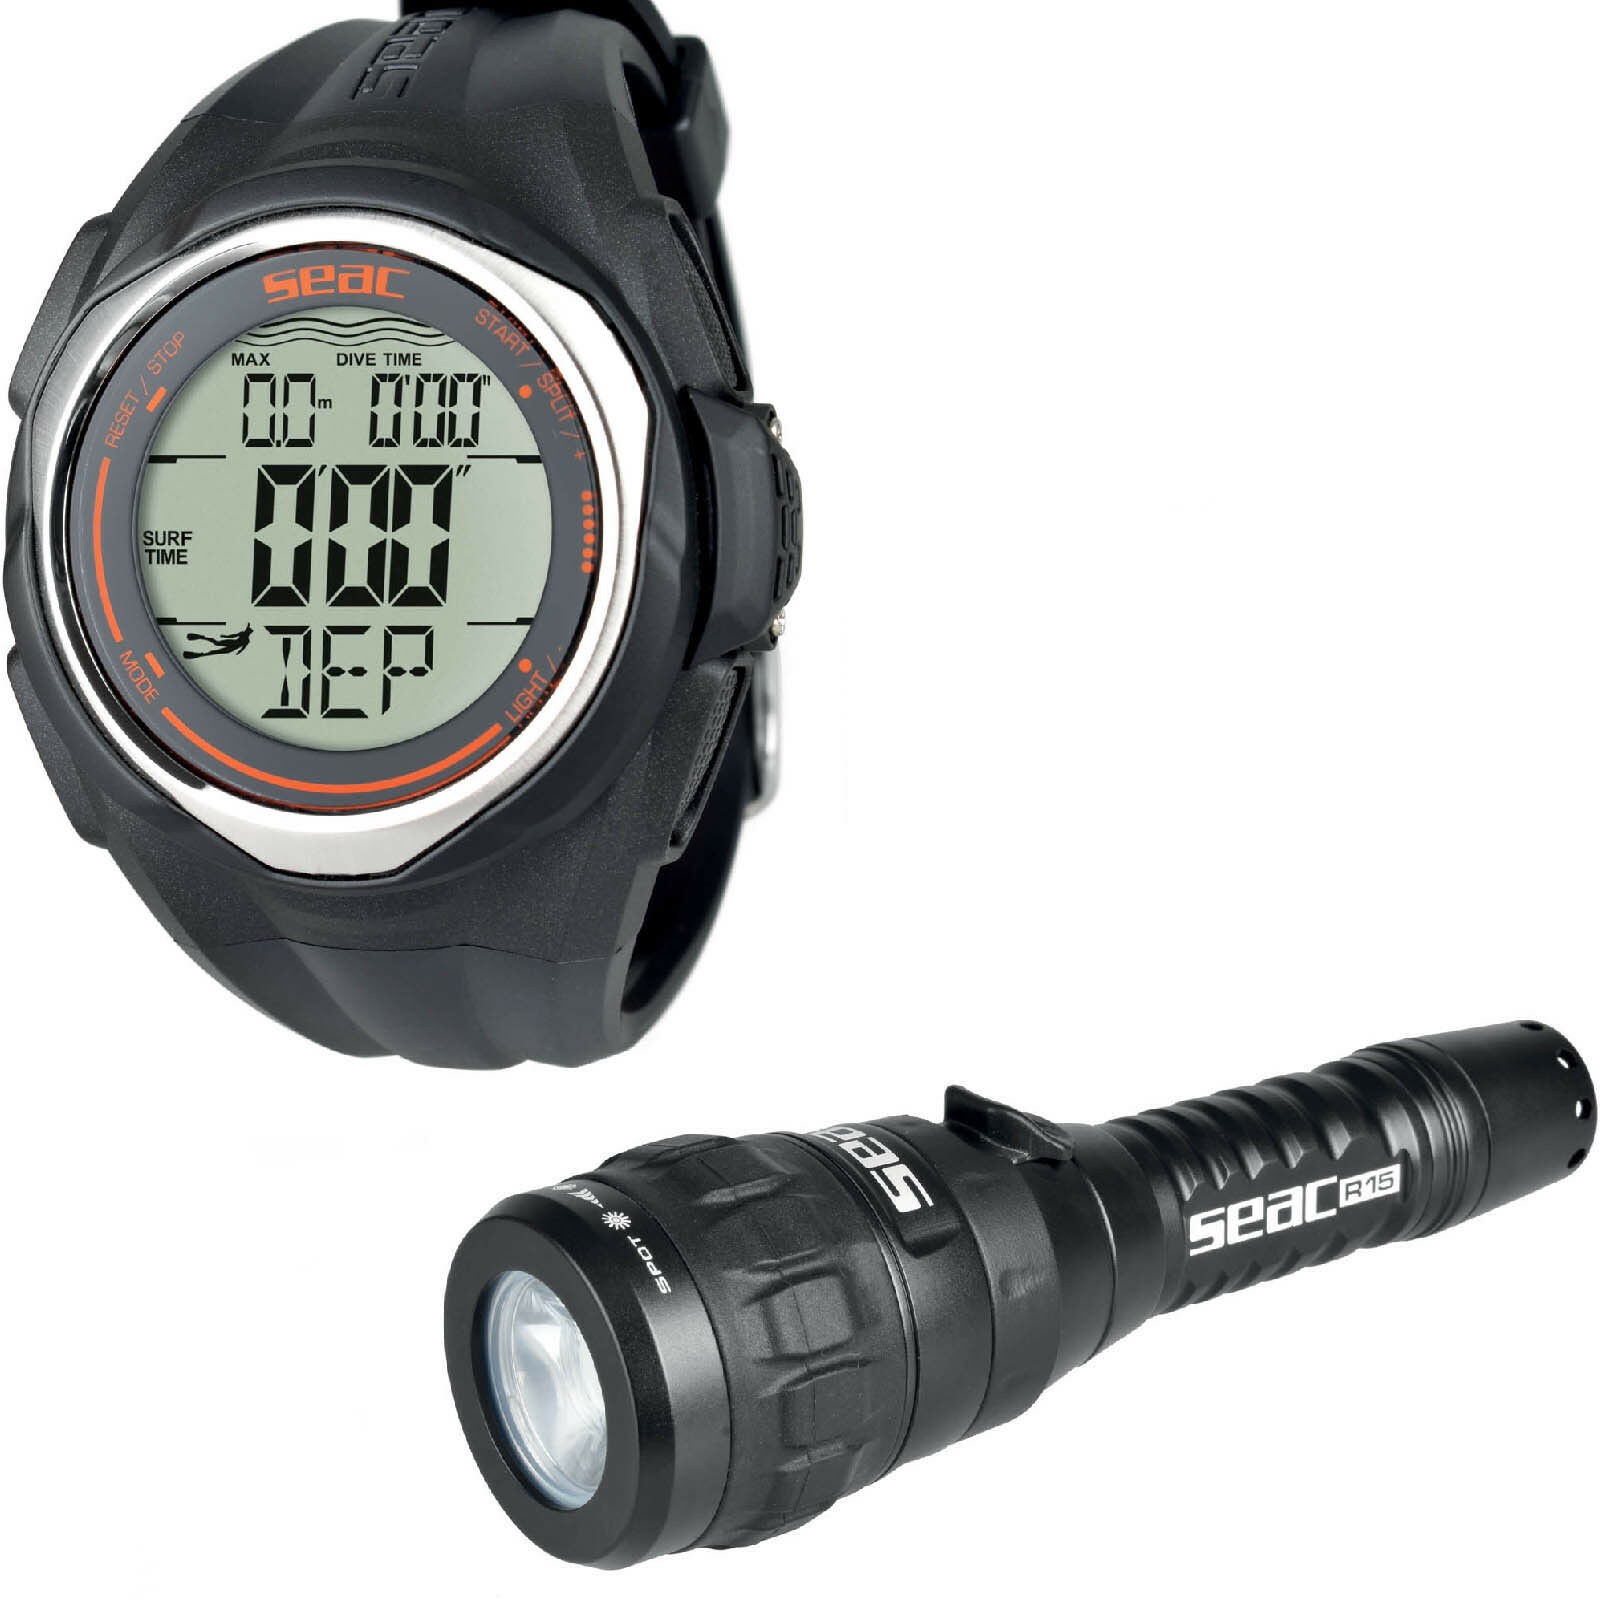 LO3 Computer apnea freediving Seac Sub Partner + Torch led Seac R15 rechargeable